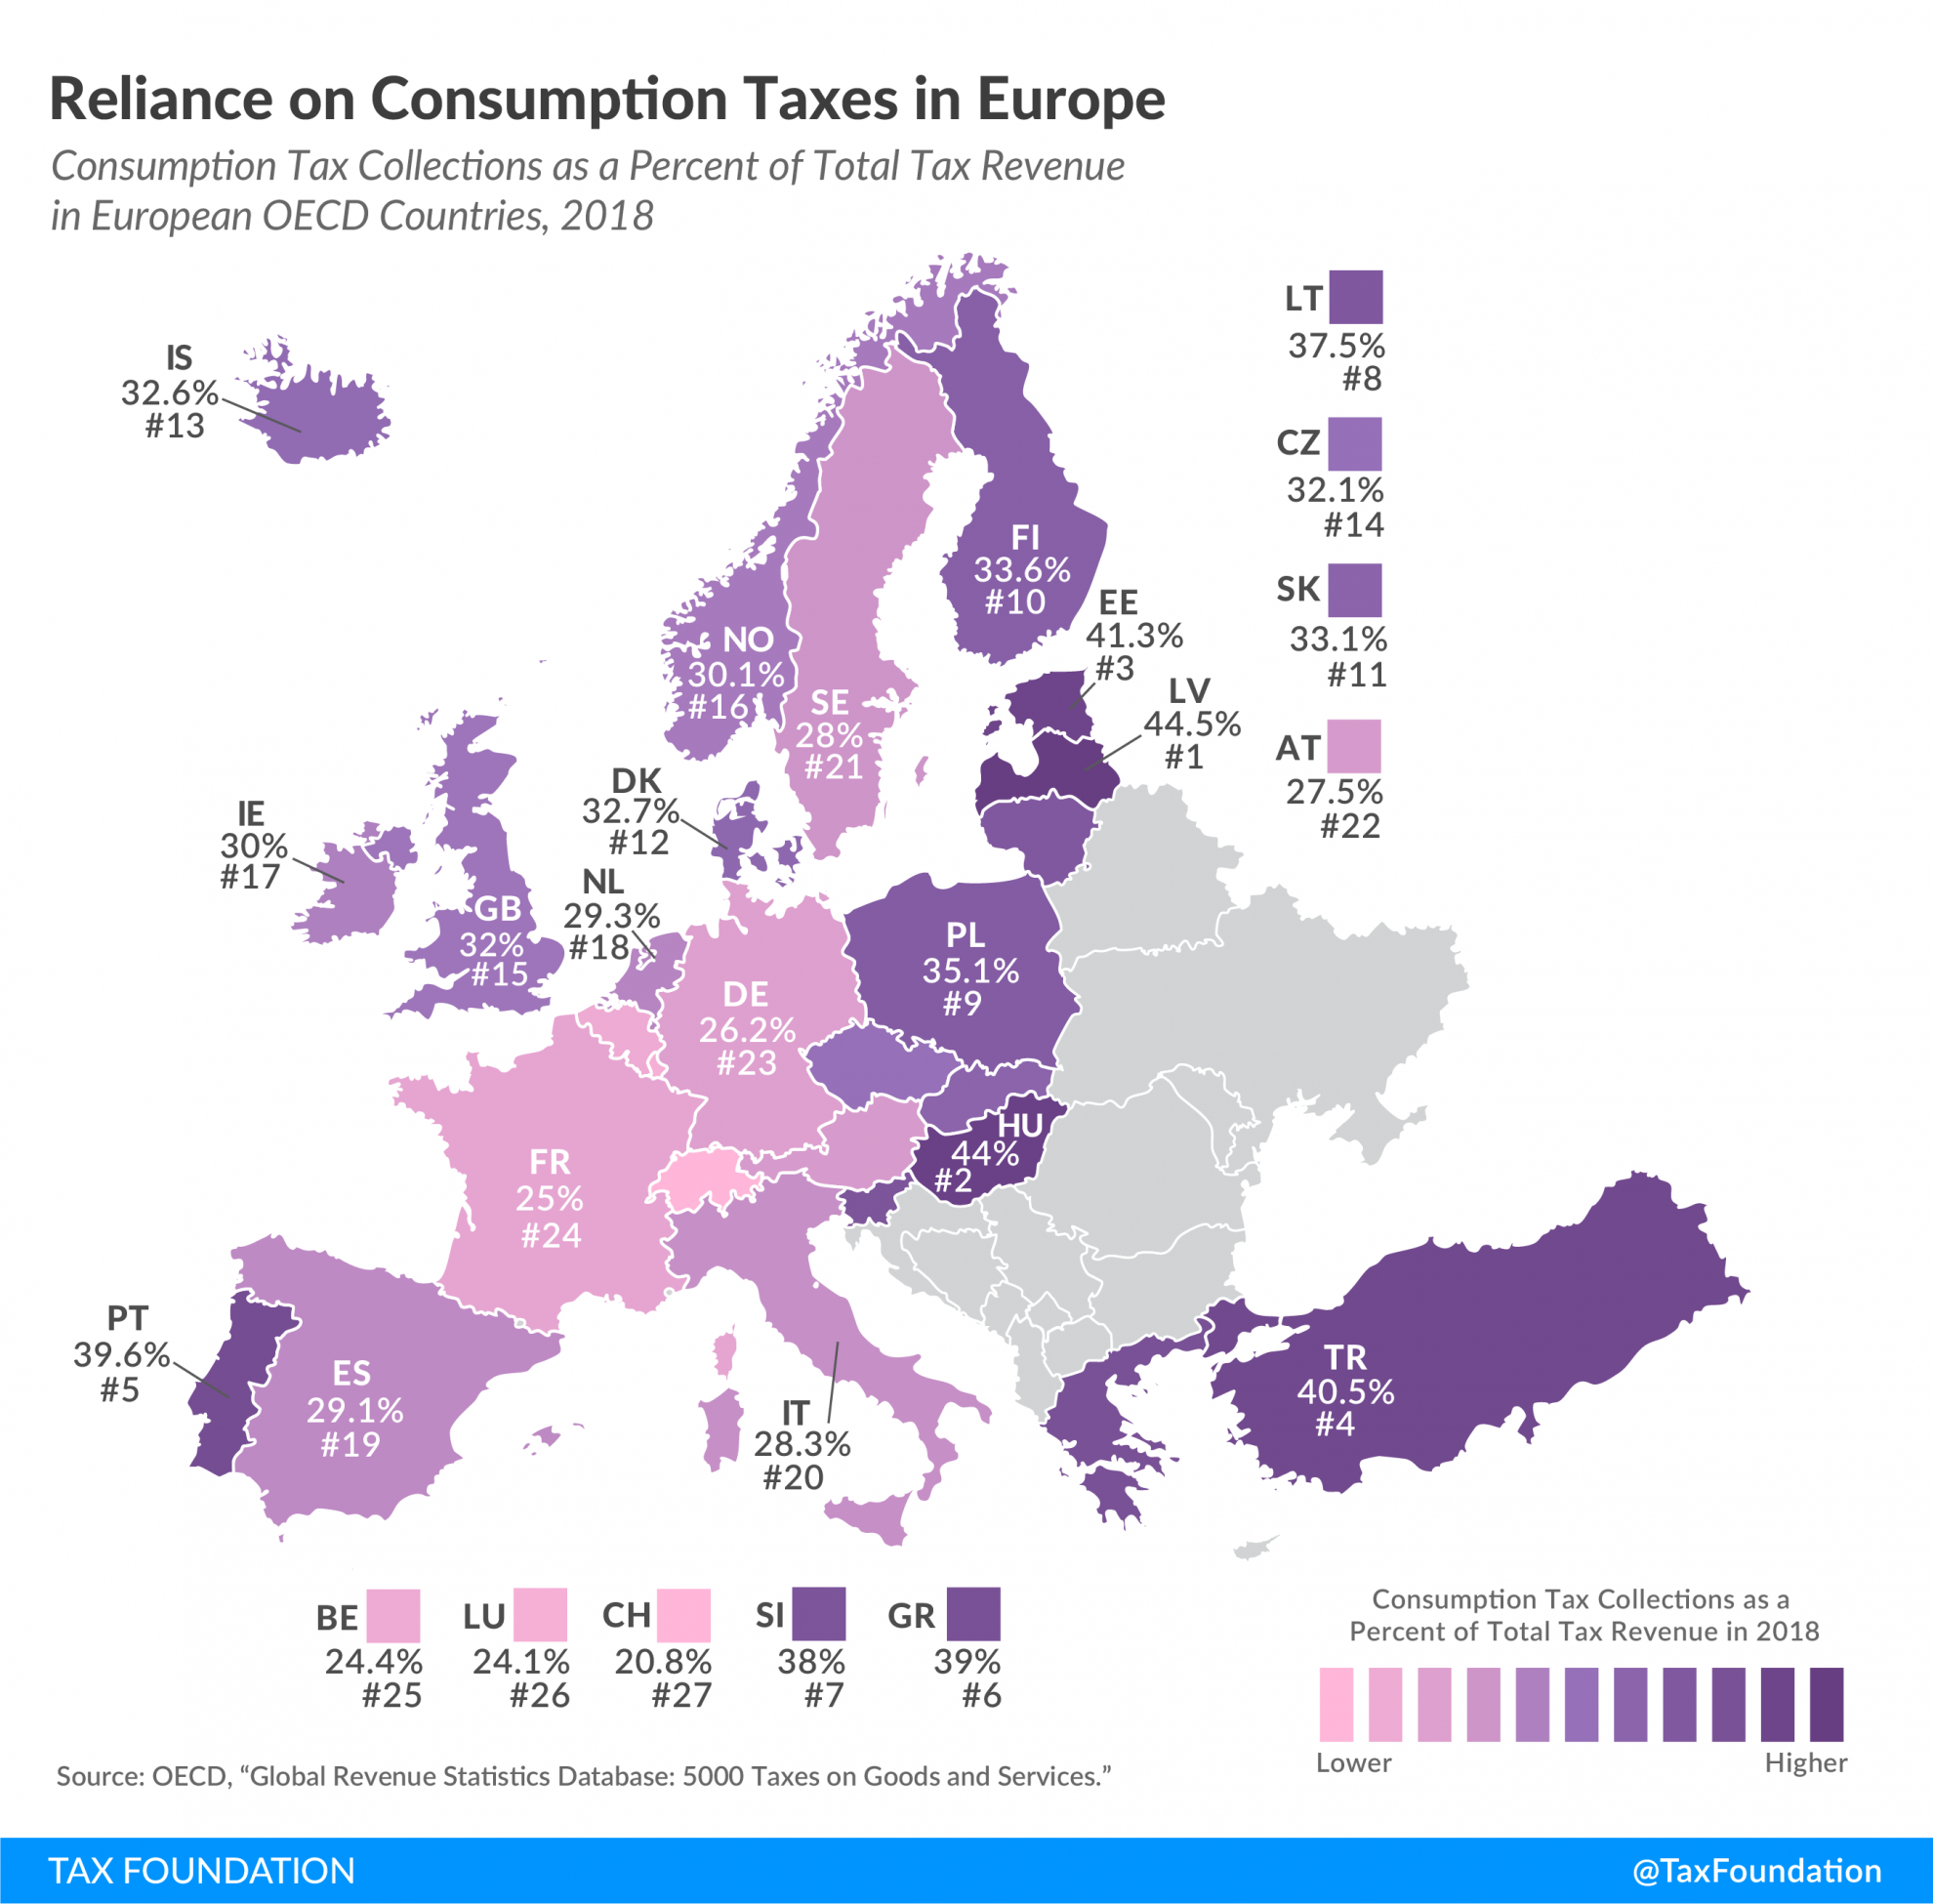 Consumption Taxes in Europe, Consumption Tax Revenue in Europe, Consumption Tax Reliance in Europe, Reliance on consumption taxes in Europe